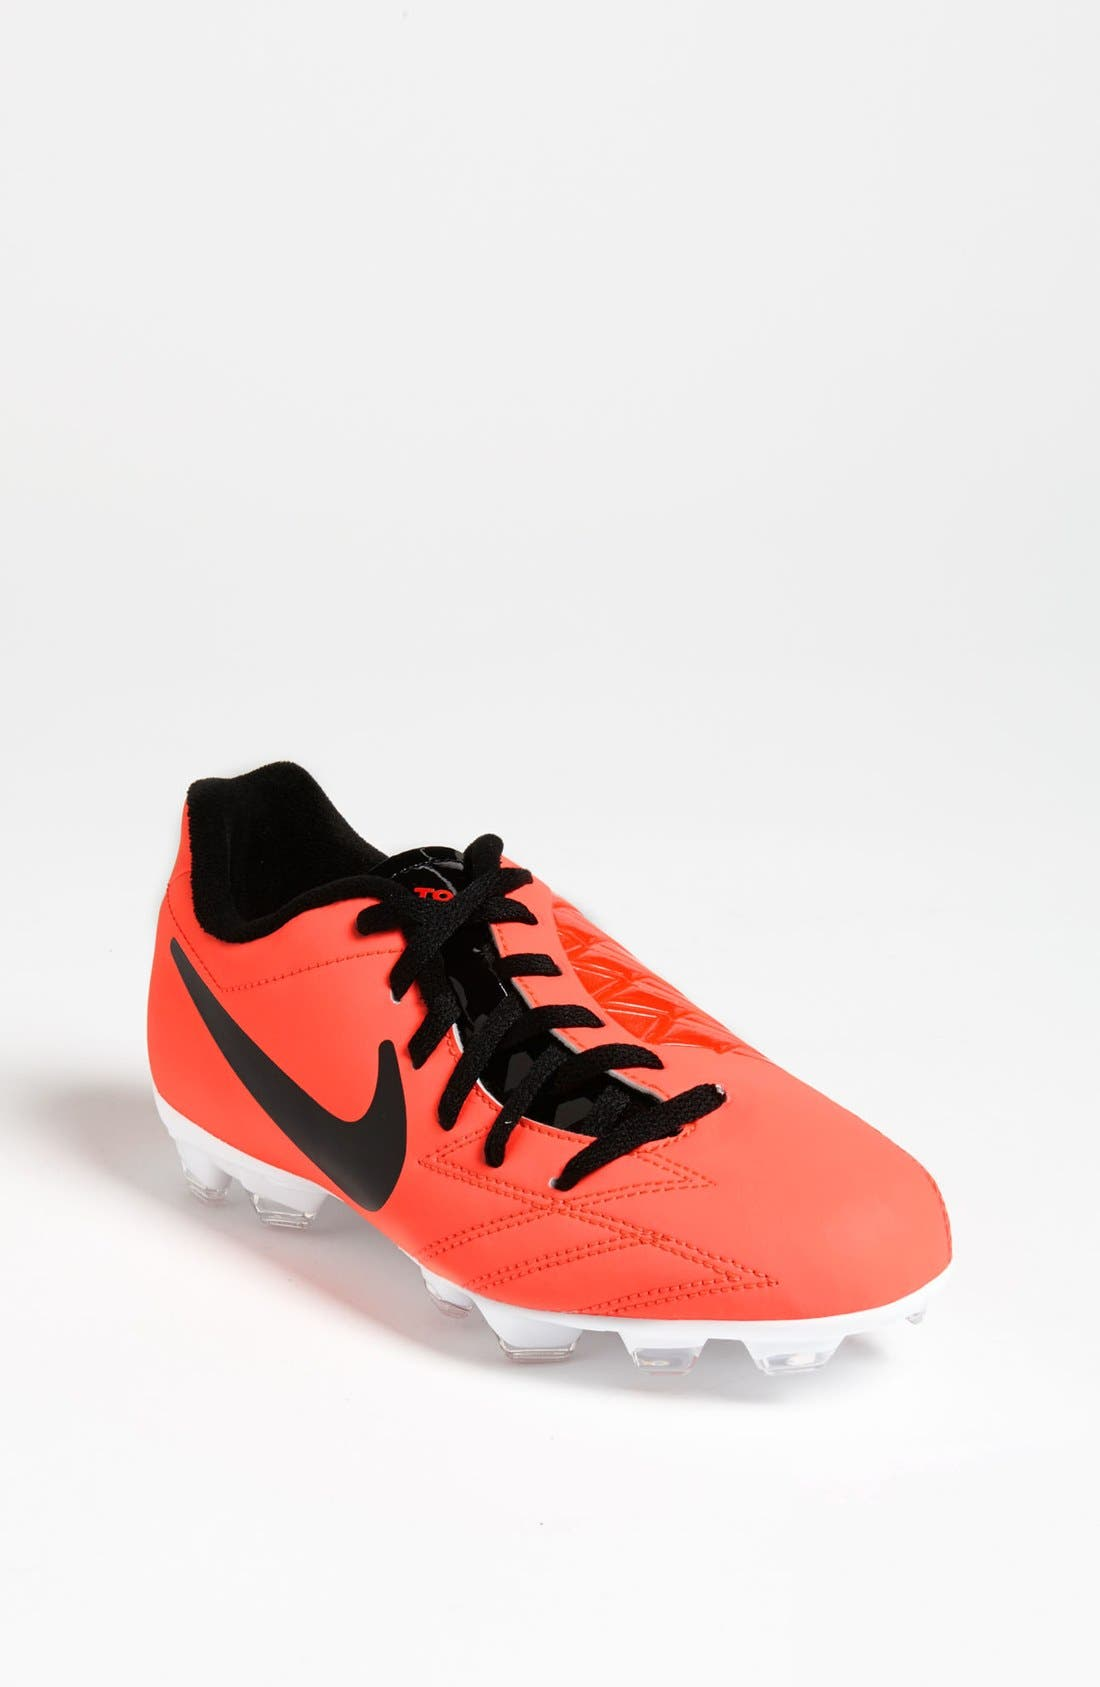 Main Image - Nike 'T-90 Shoot IV' Soccer Cleat (Toddler, Little Kid & Big Kid)